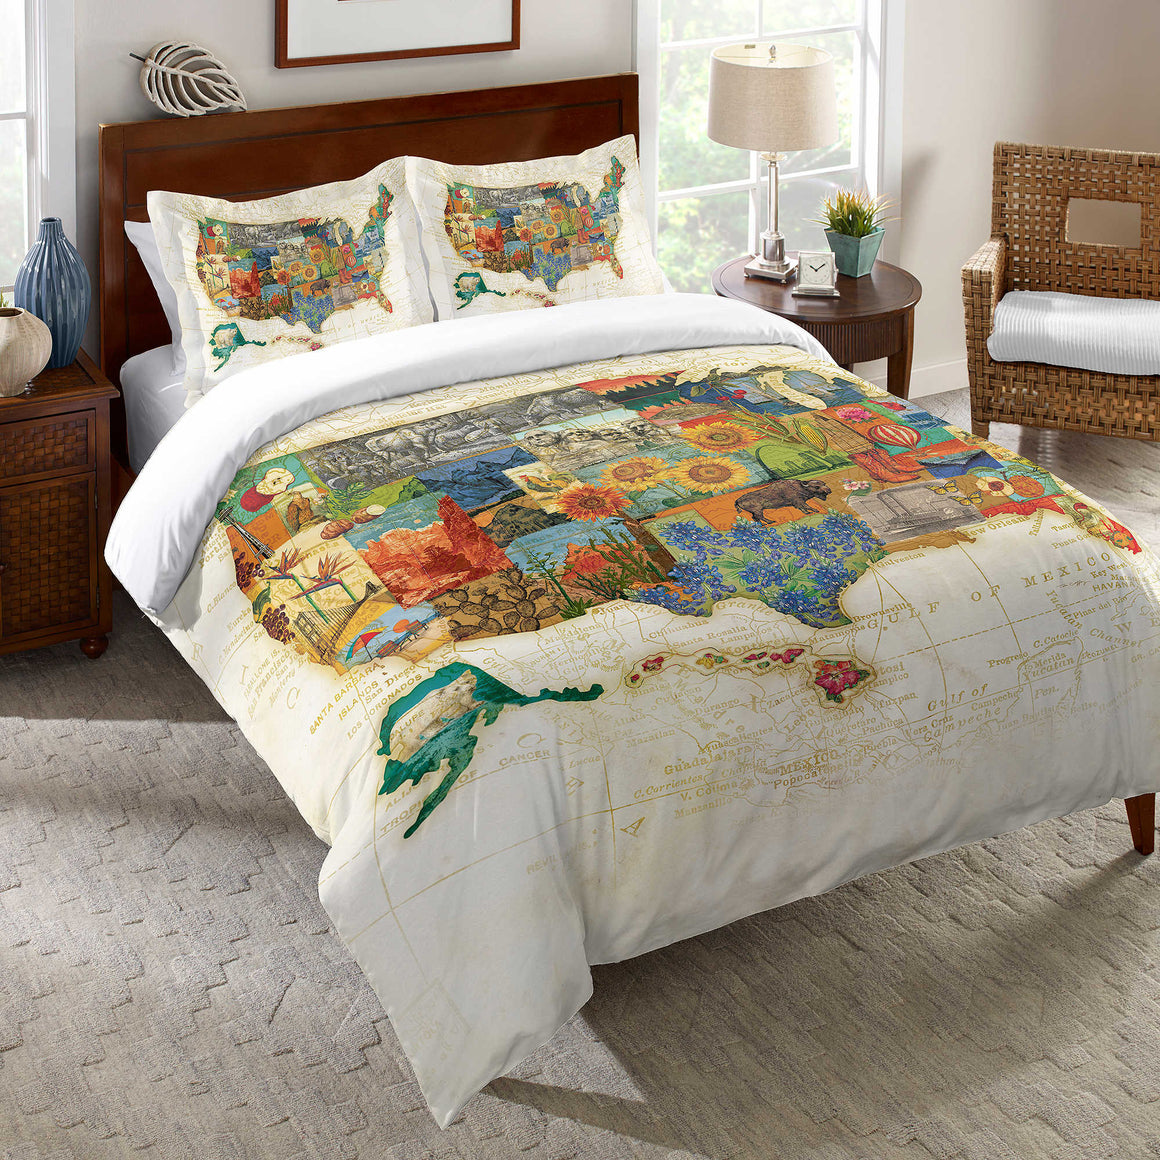 Vintage Travel Map Duvet Cover